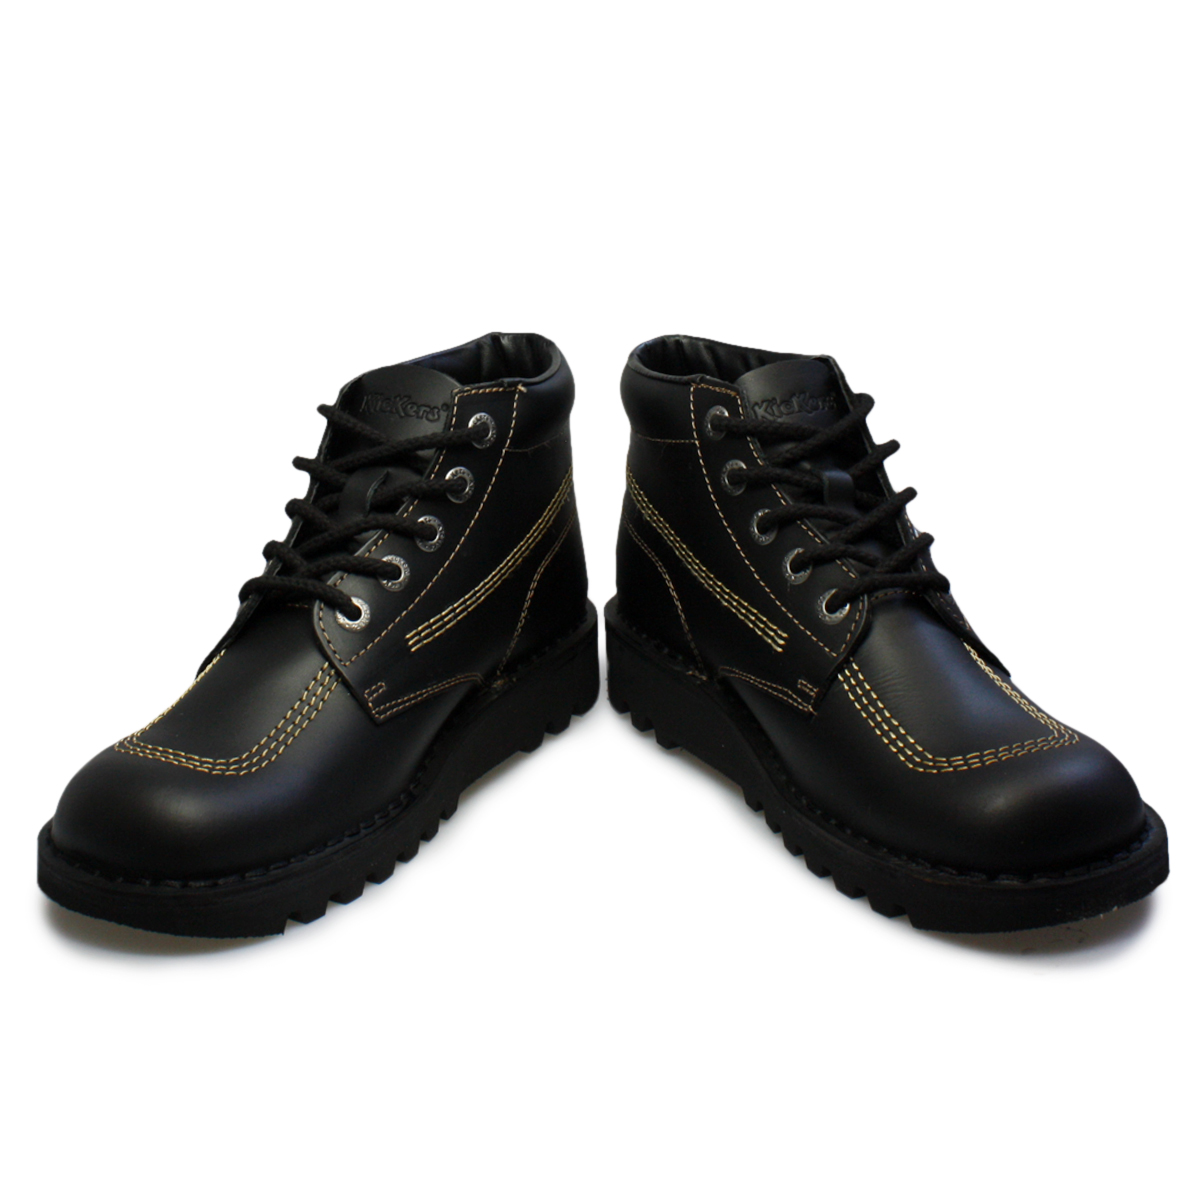 Kickers Kick Hi M Core Black Gold Leather Youth School ...